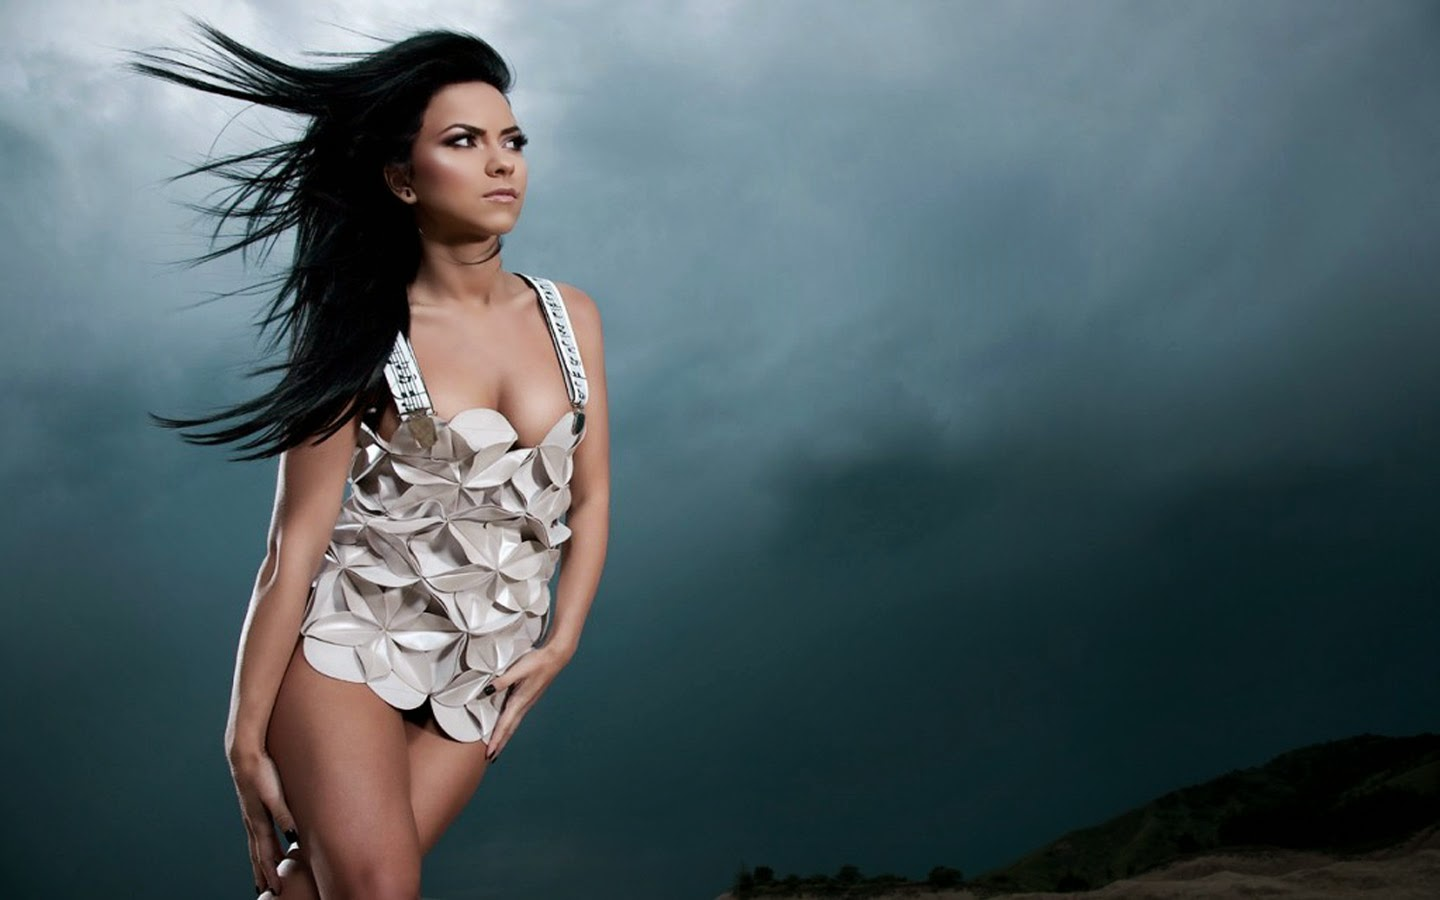 Inna romania singer hd wallpapers of world 39 s hot actress - Inna wallpaper hd ...